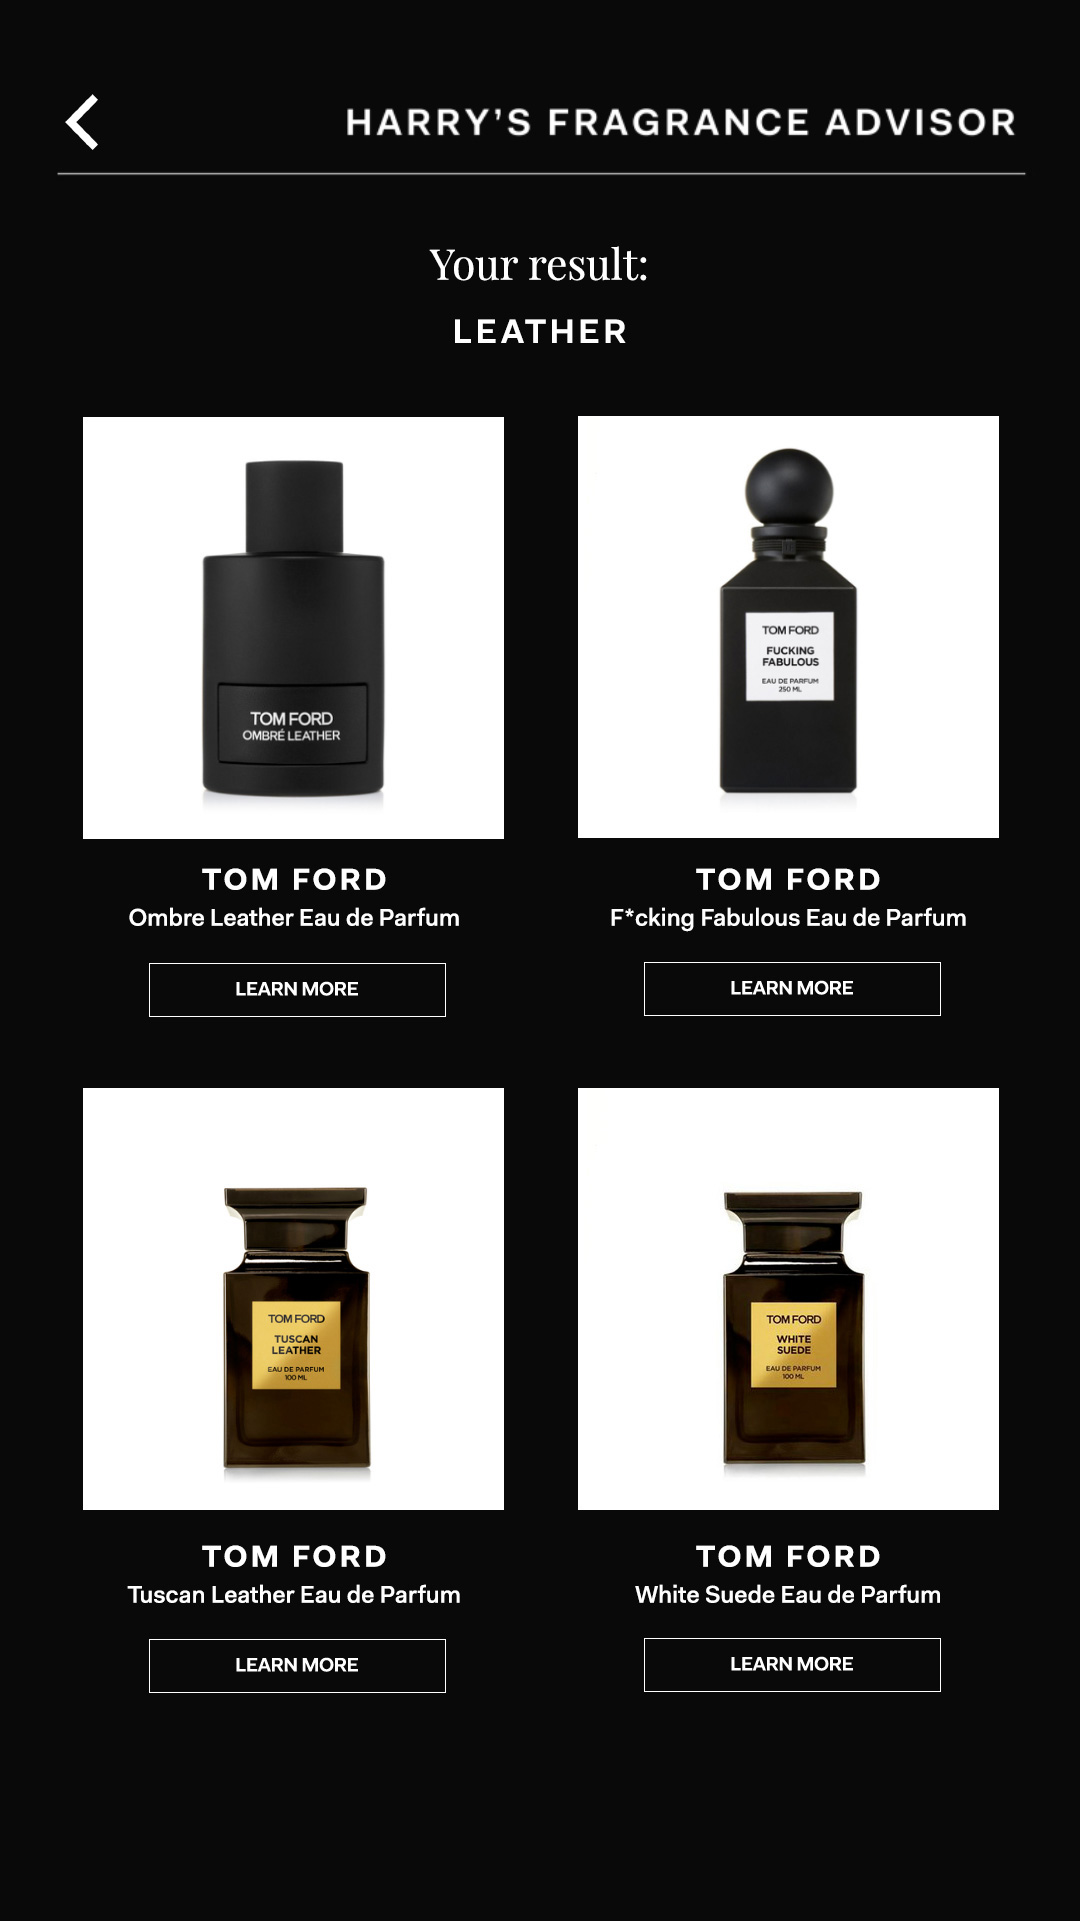 harrys-fragrance-advisor-leather